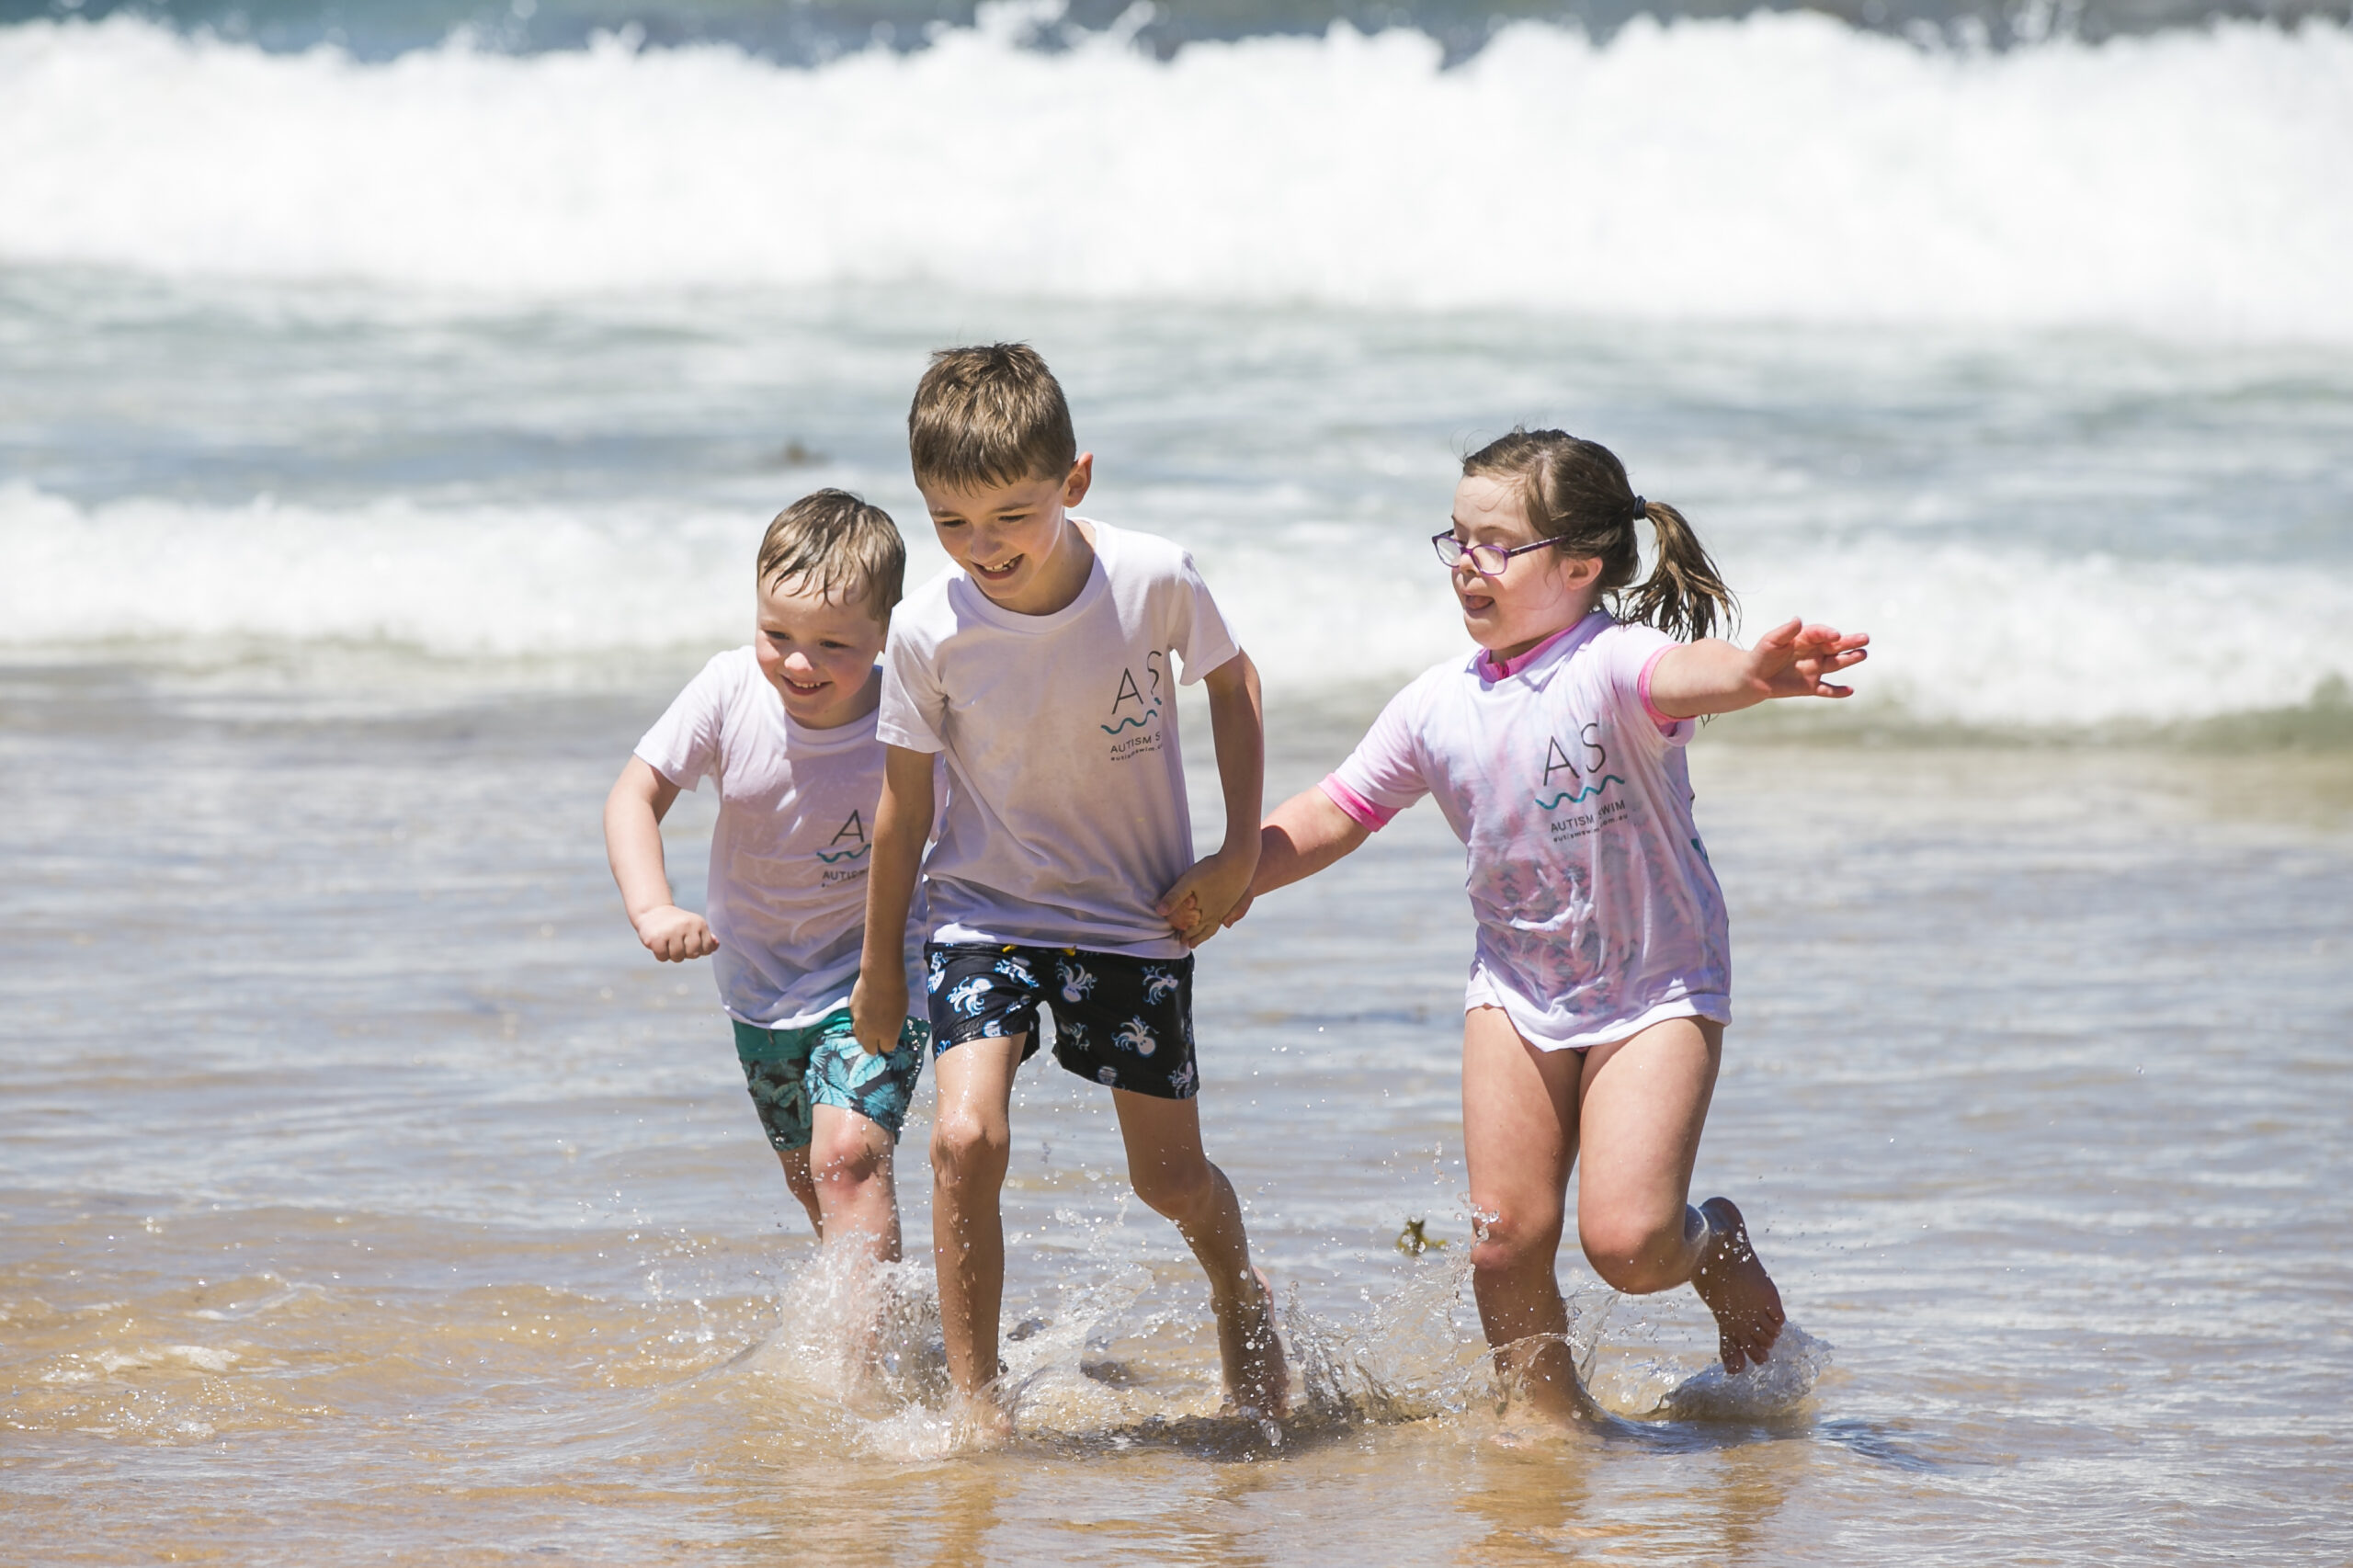 Coogee Dippers kids Jasper Getts, 4, Harley Getts, 8, and Cate Smith, 8. Picture: Dylan Robinson